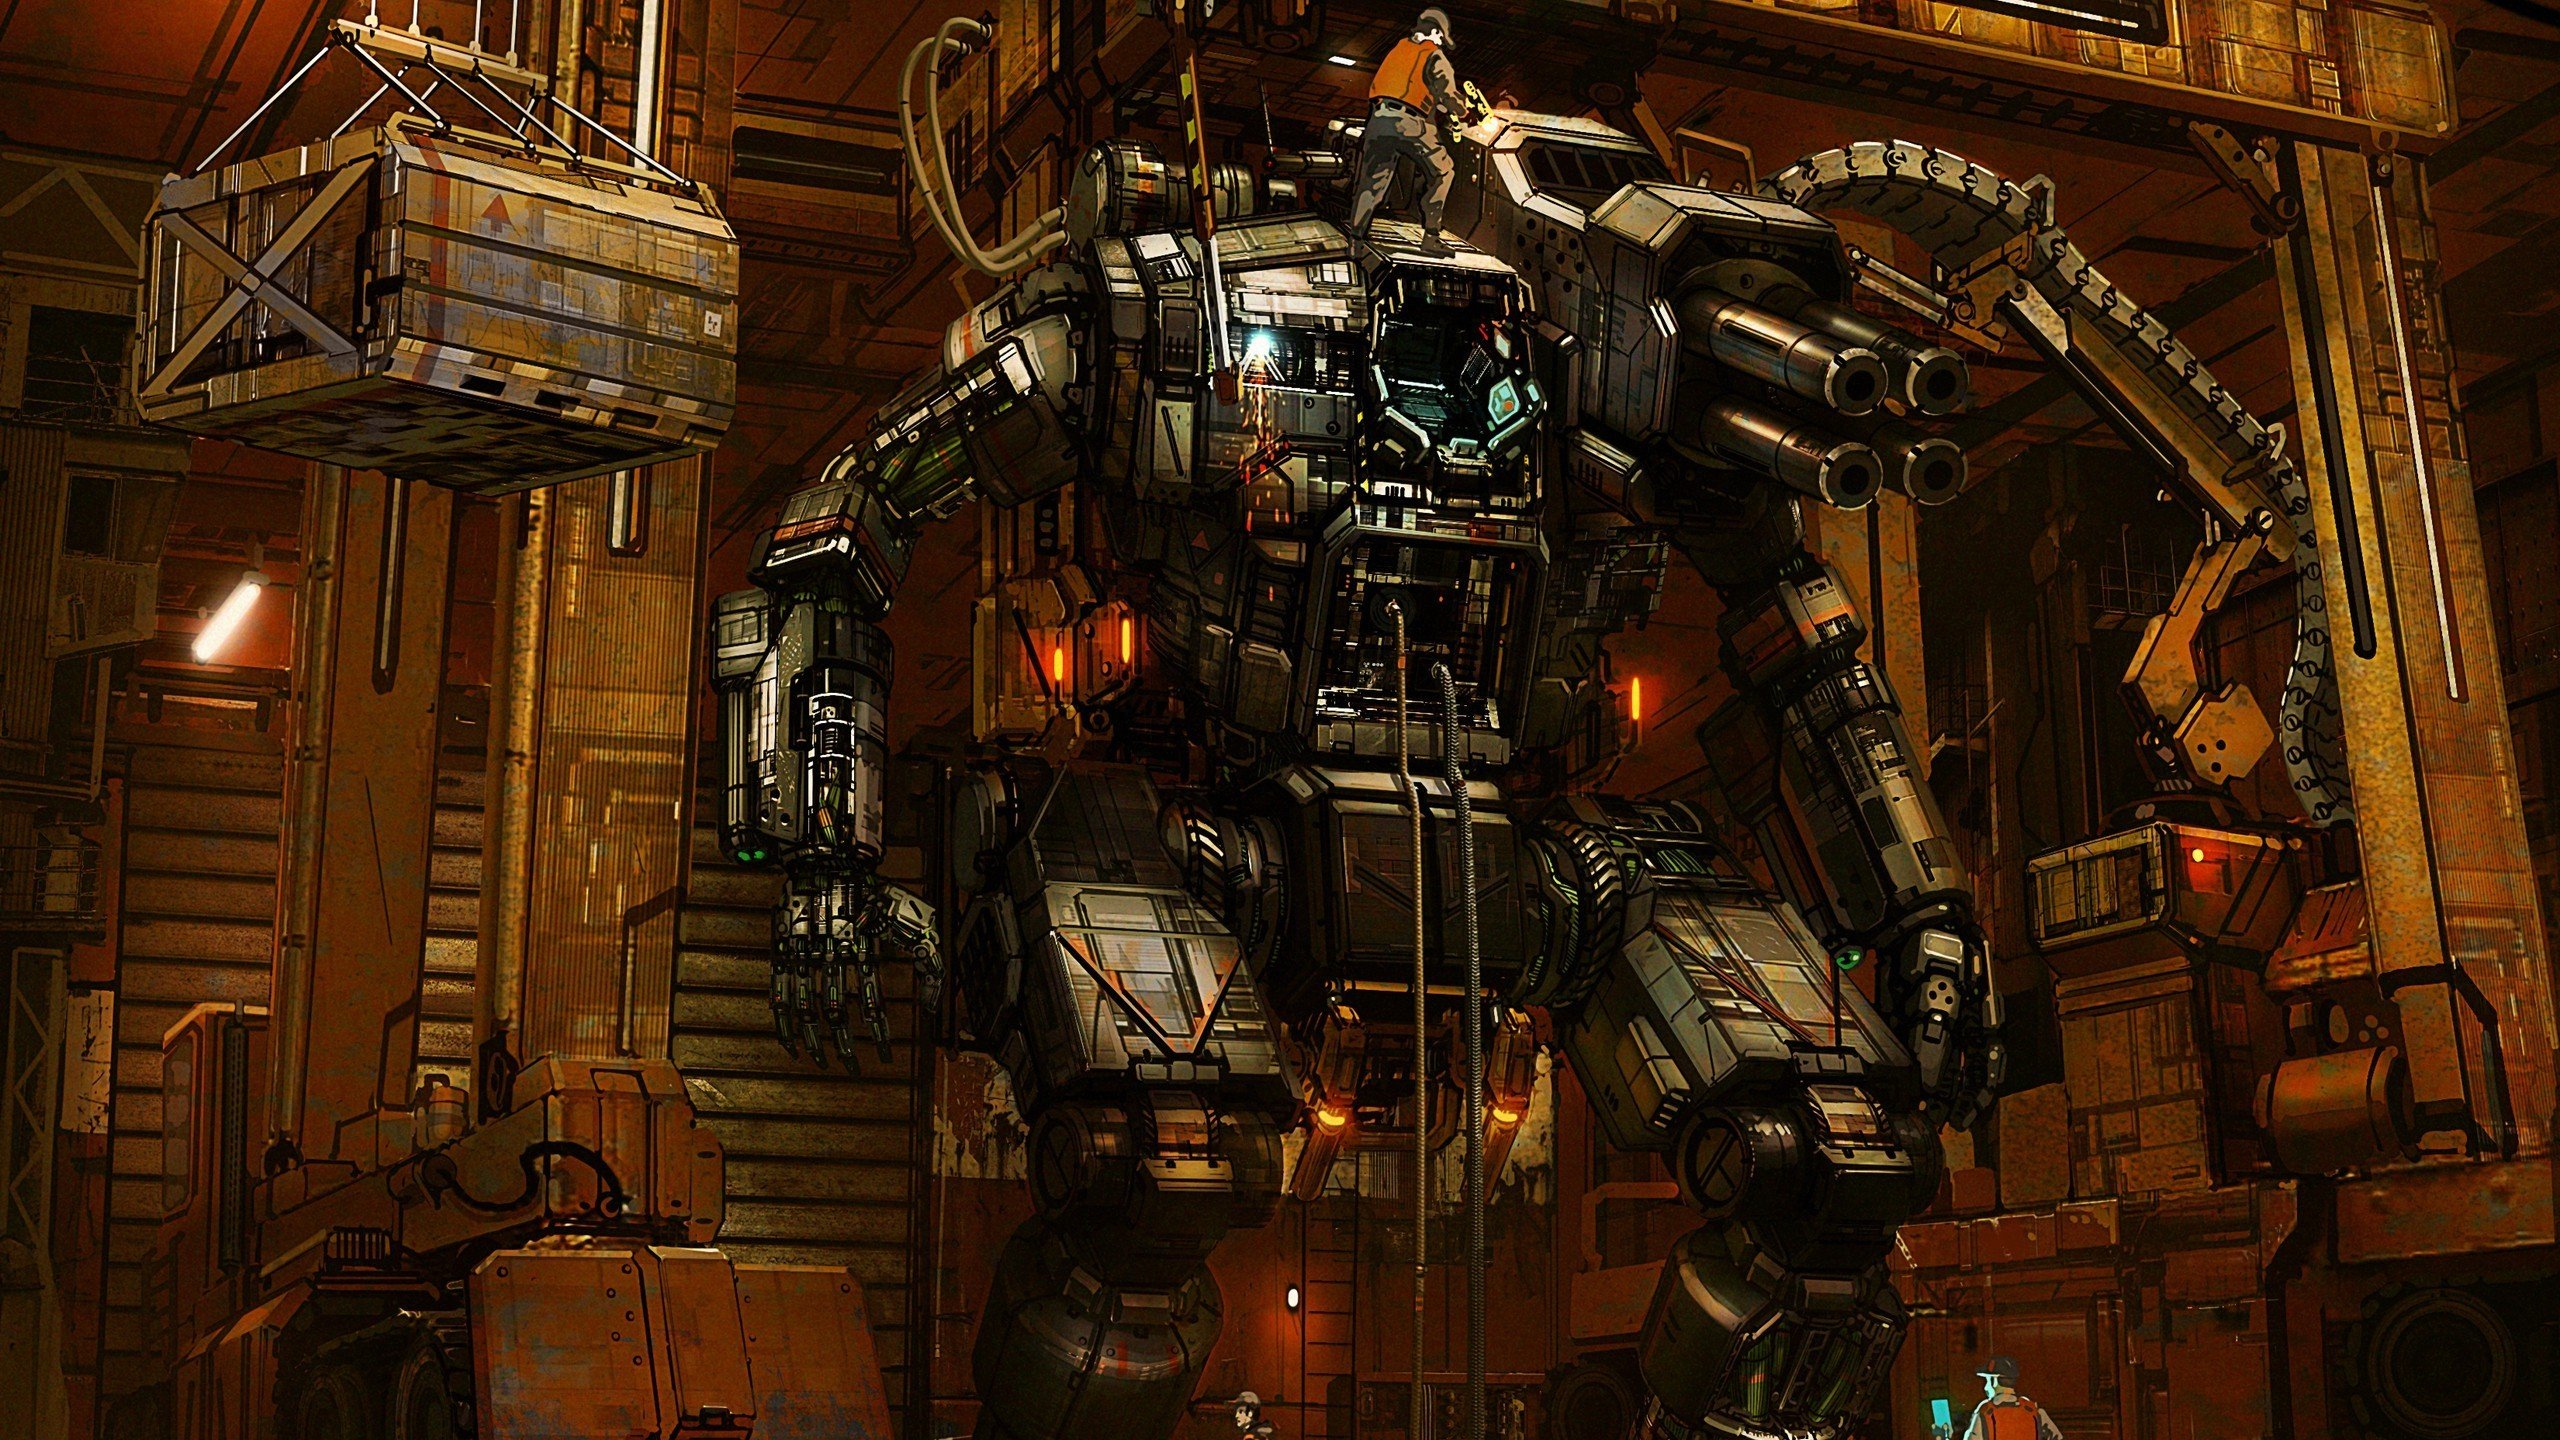 MechWarrior HD Wallpaper 1920x1080 MechWarrior HD Wallpaper 1920x1200 2560x1440